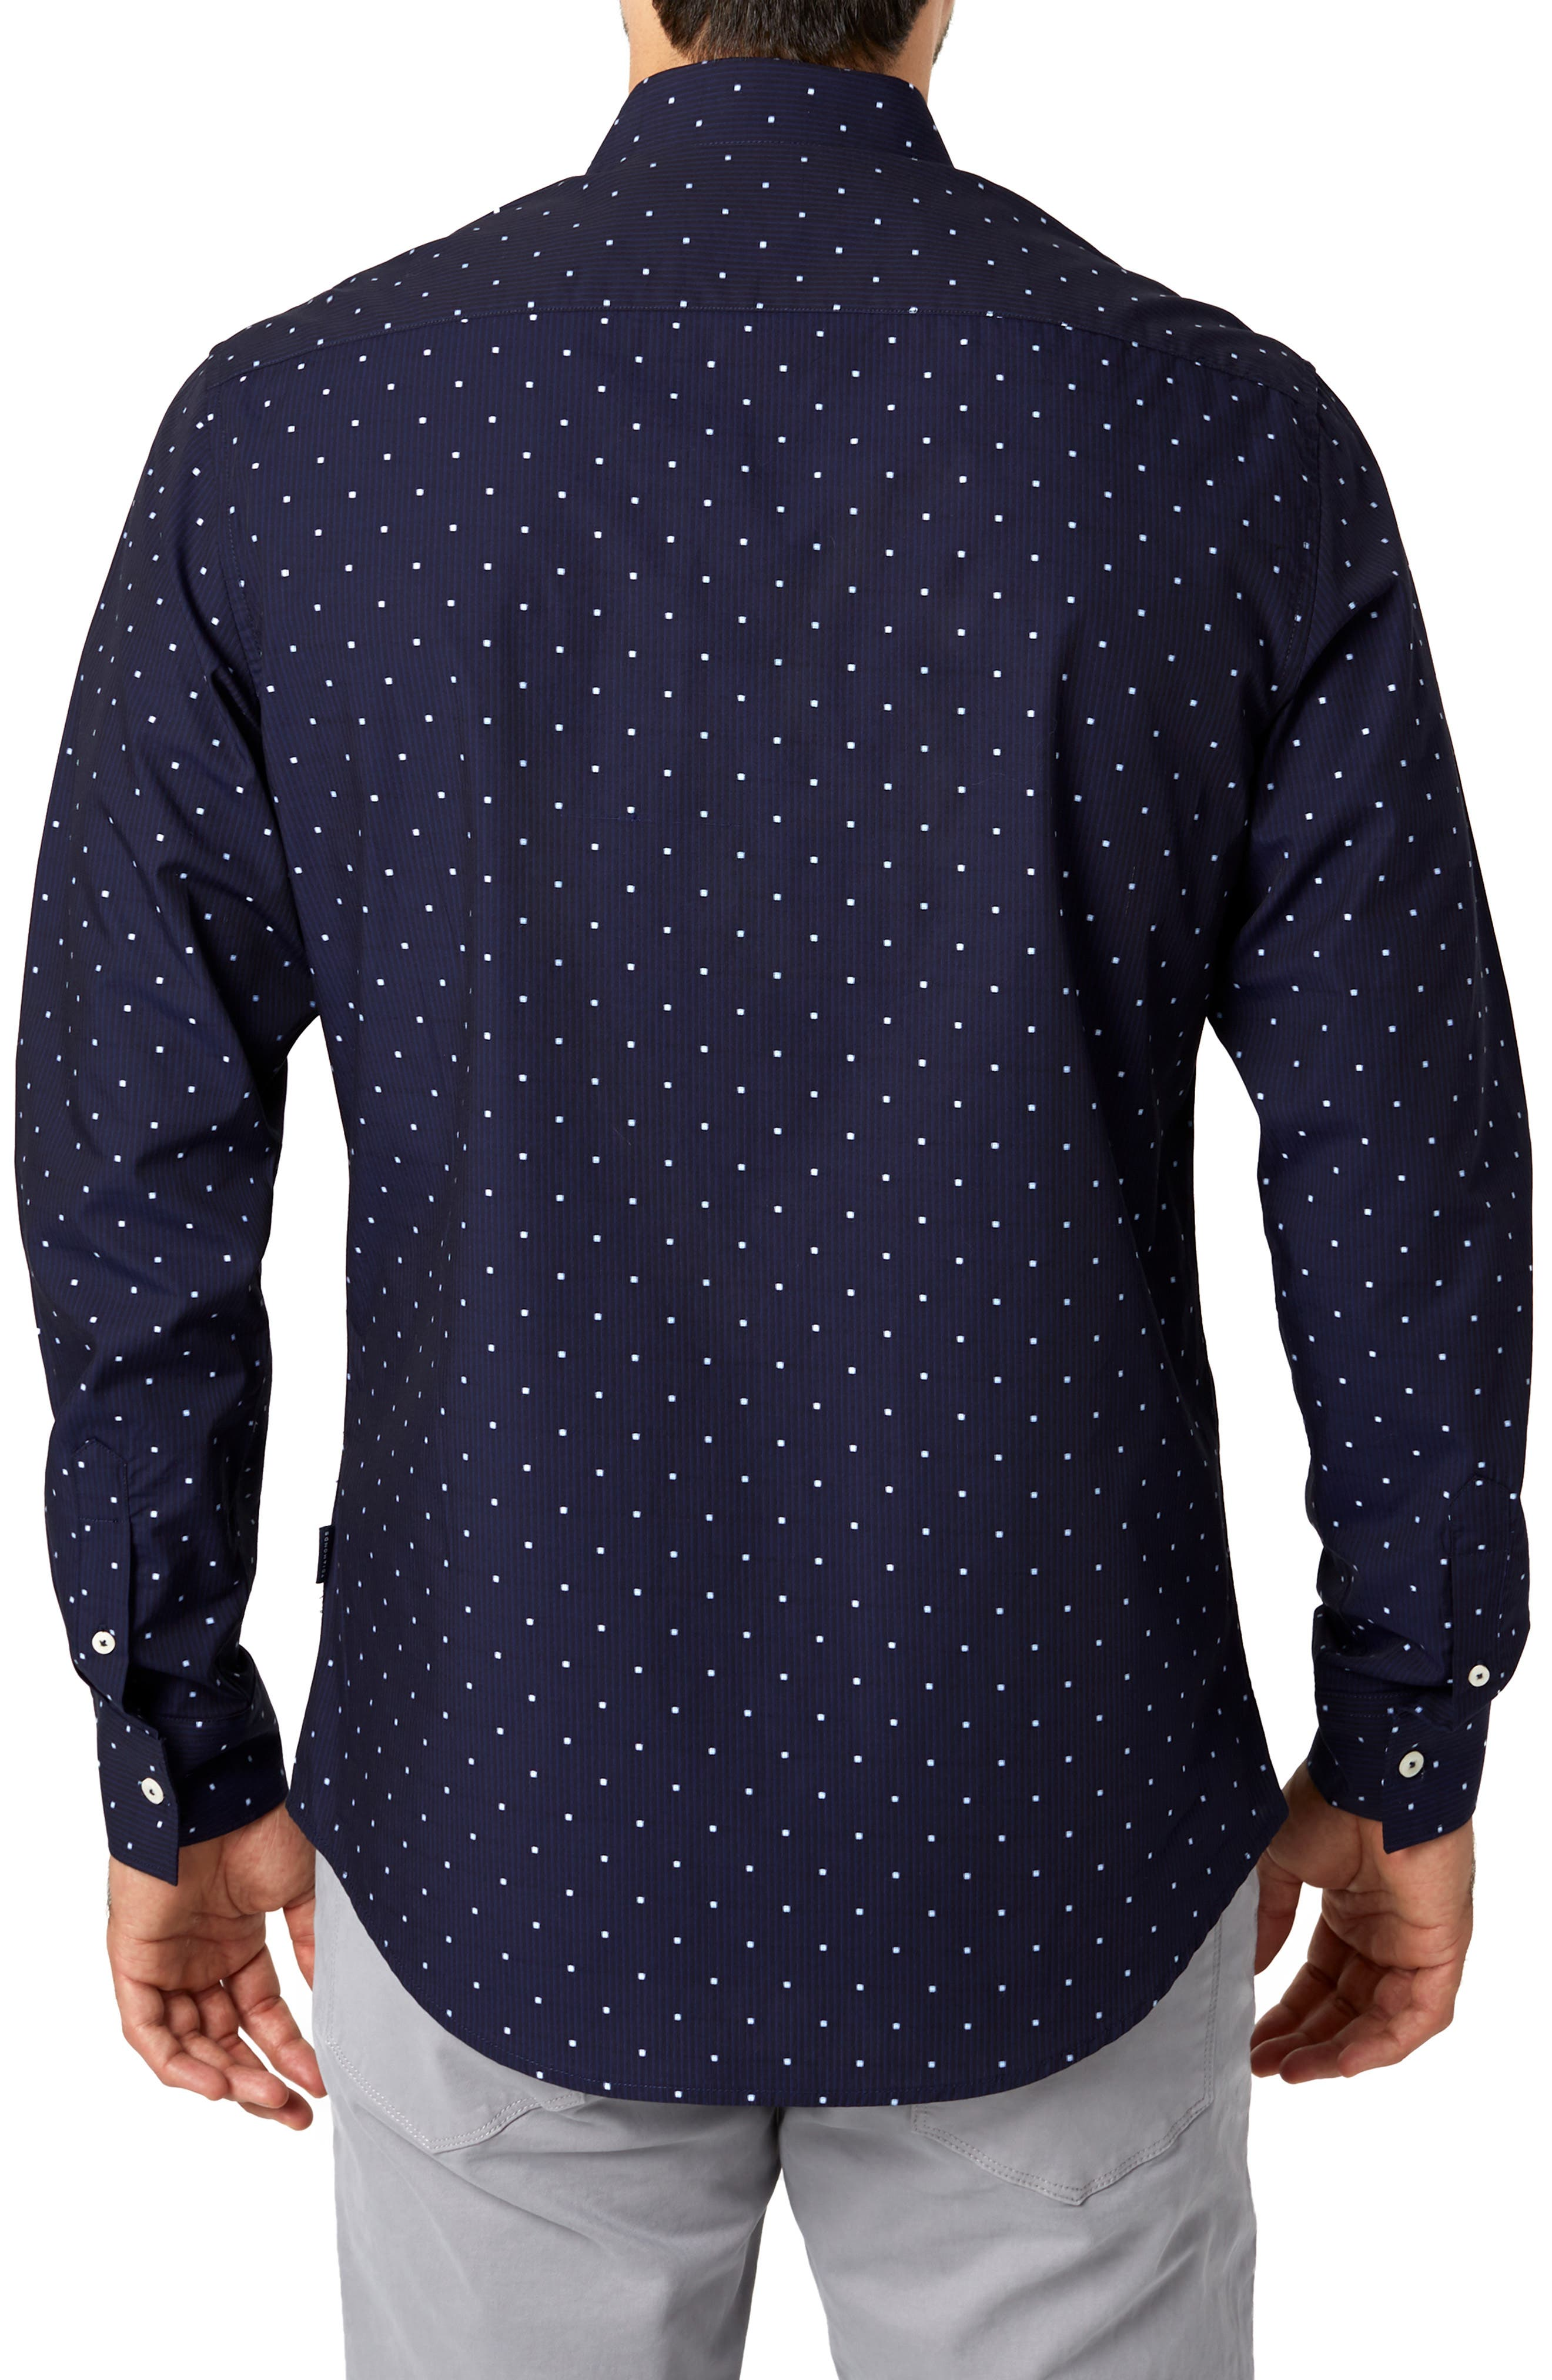 Lovers Rock Trim Fit Sport Shirt,                             Alternate thumbnail 3, color,                             NAVY